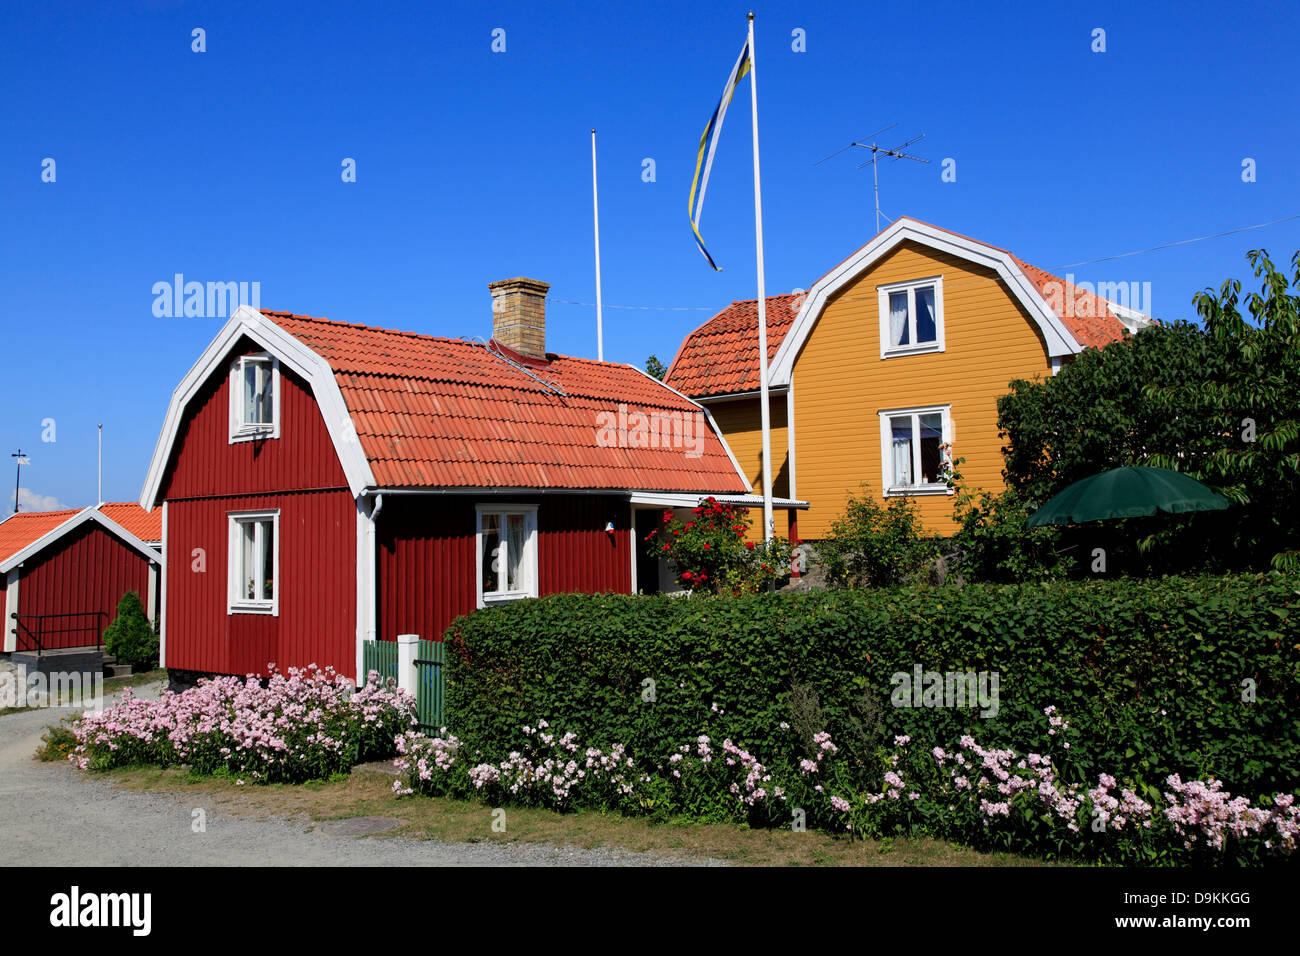 Landsort Island (Oeja), typical wooden houses, Stockholm Archipelago, baltic sea coast, Sweden, Scandinavia - Stock Image